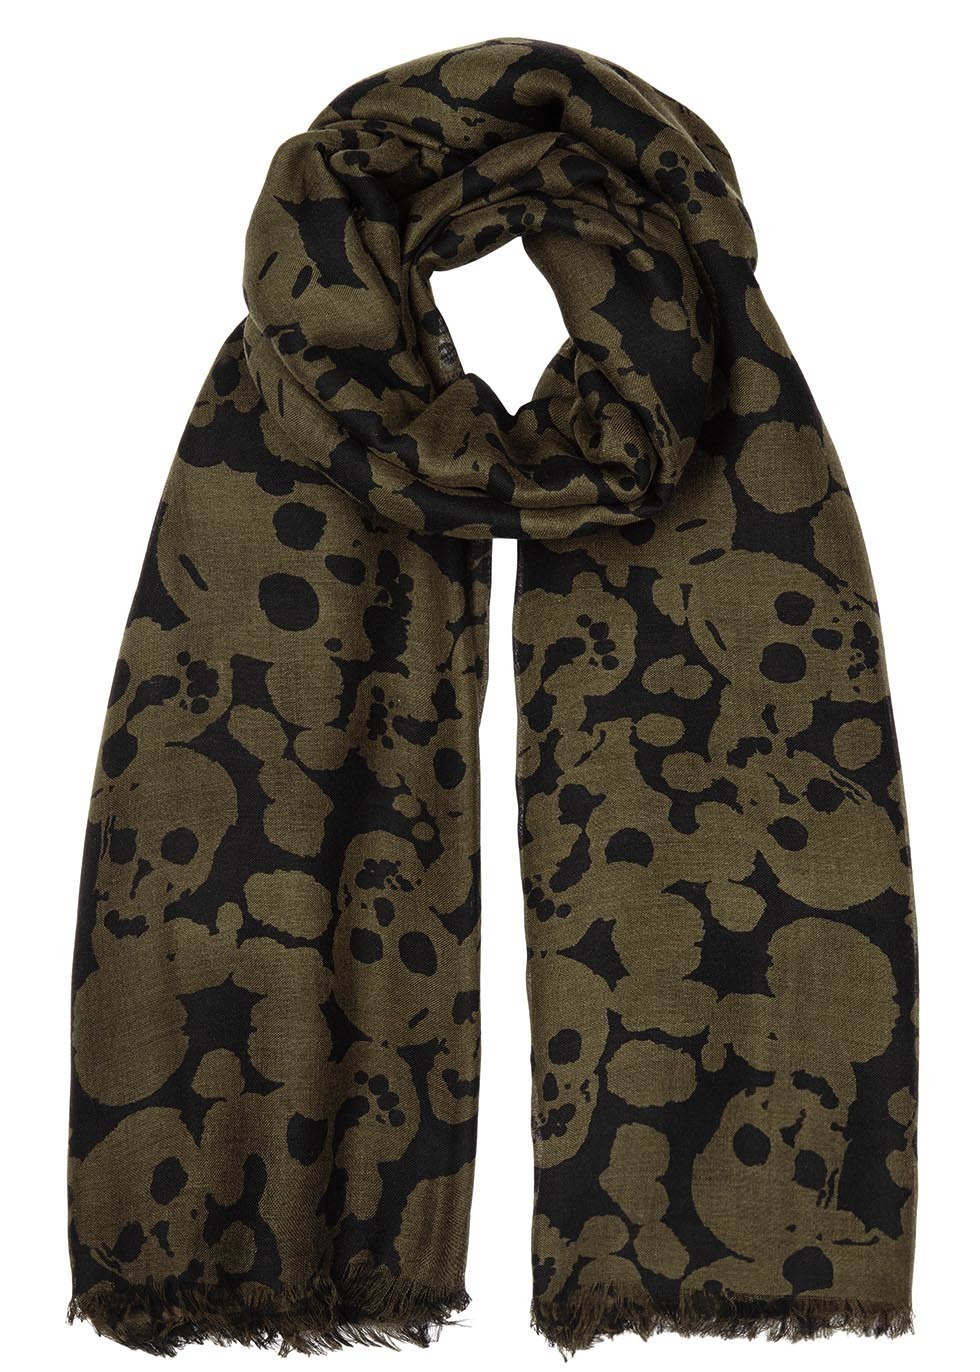 Camouflage Skull Olive Silk Blend Scarf - predominant colour: khaki; secondary colour: black; occasions: casual, creative work; type of pattern: standard; style: regular; size: standard; material: fabric; pattern: patterned/print; season: s/s 2016; wardrobe: highlight